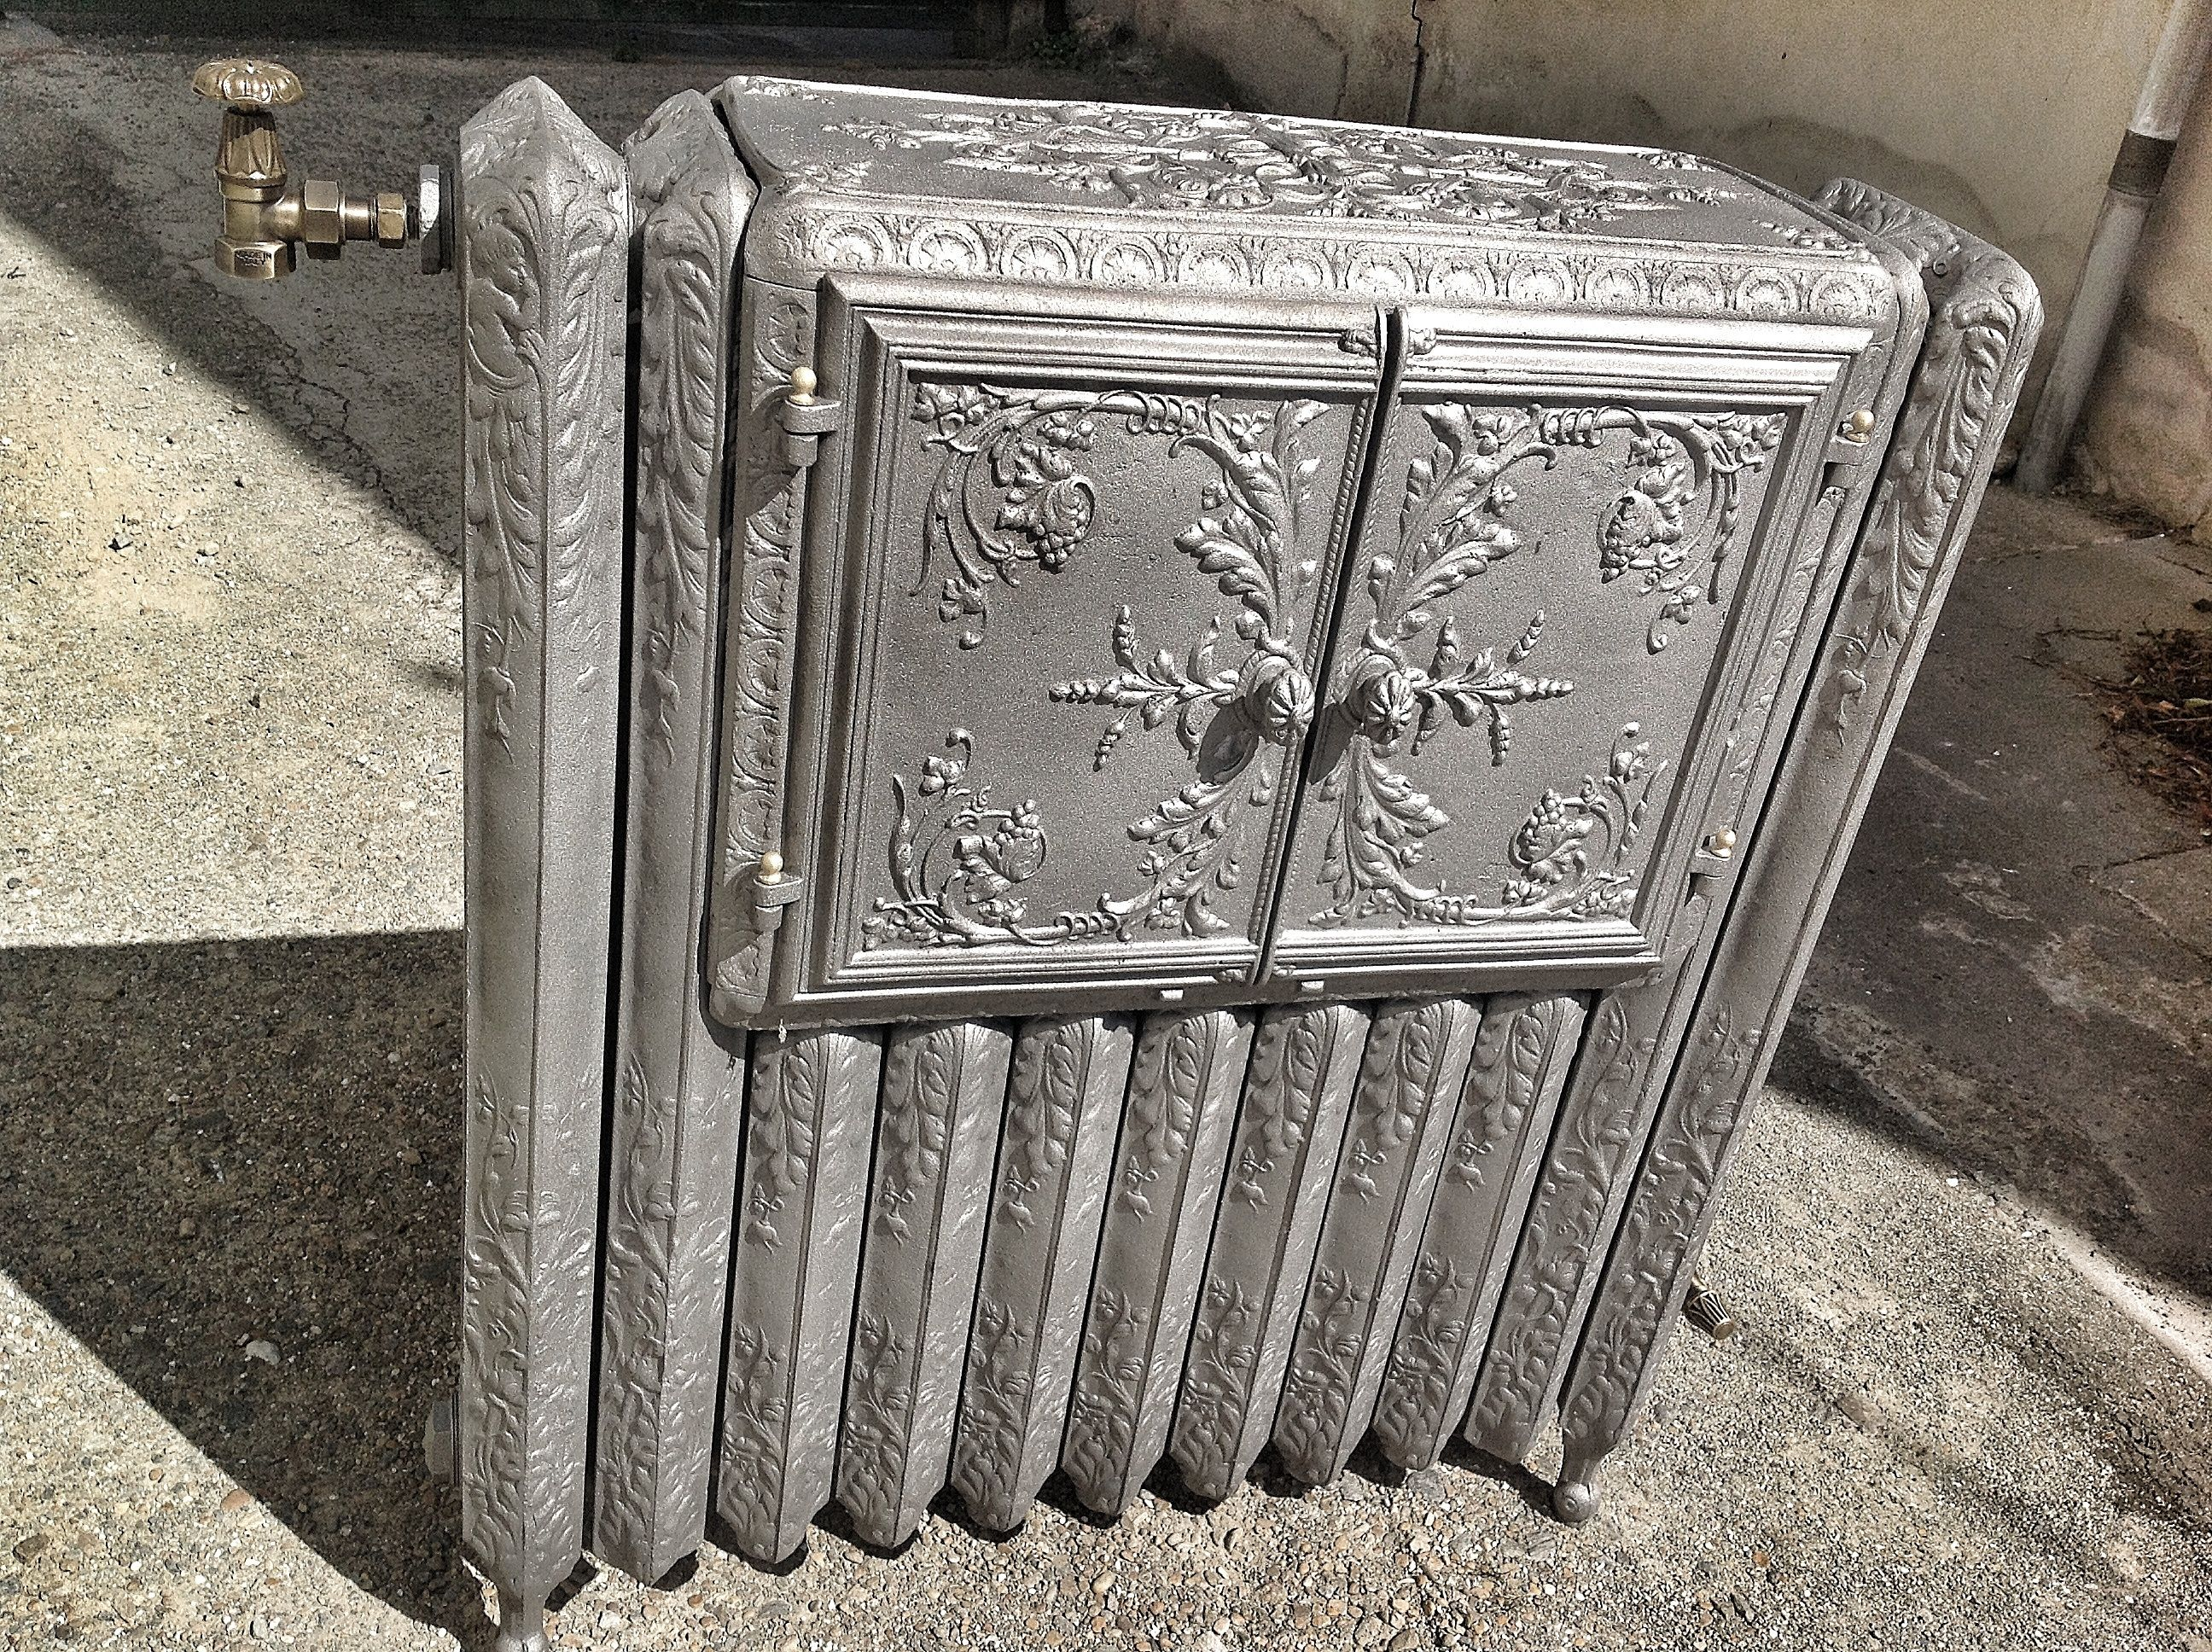 radiateur chauffe plat ancien 1900 fleurs de fonte. Black Bedroom Furniture Sets. Home Design Ideas